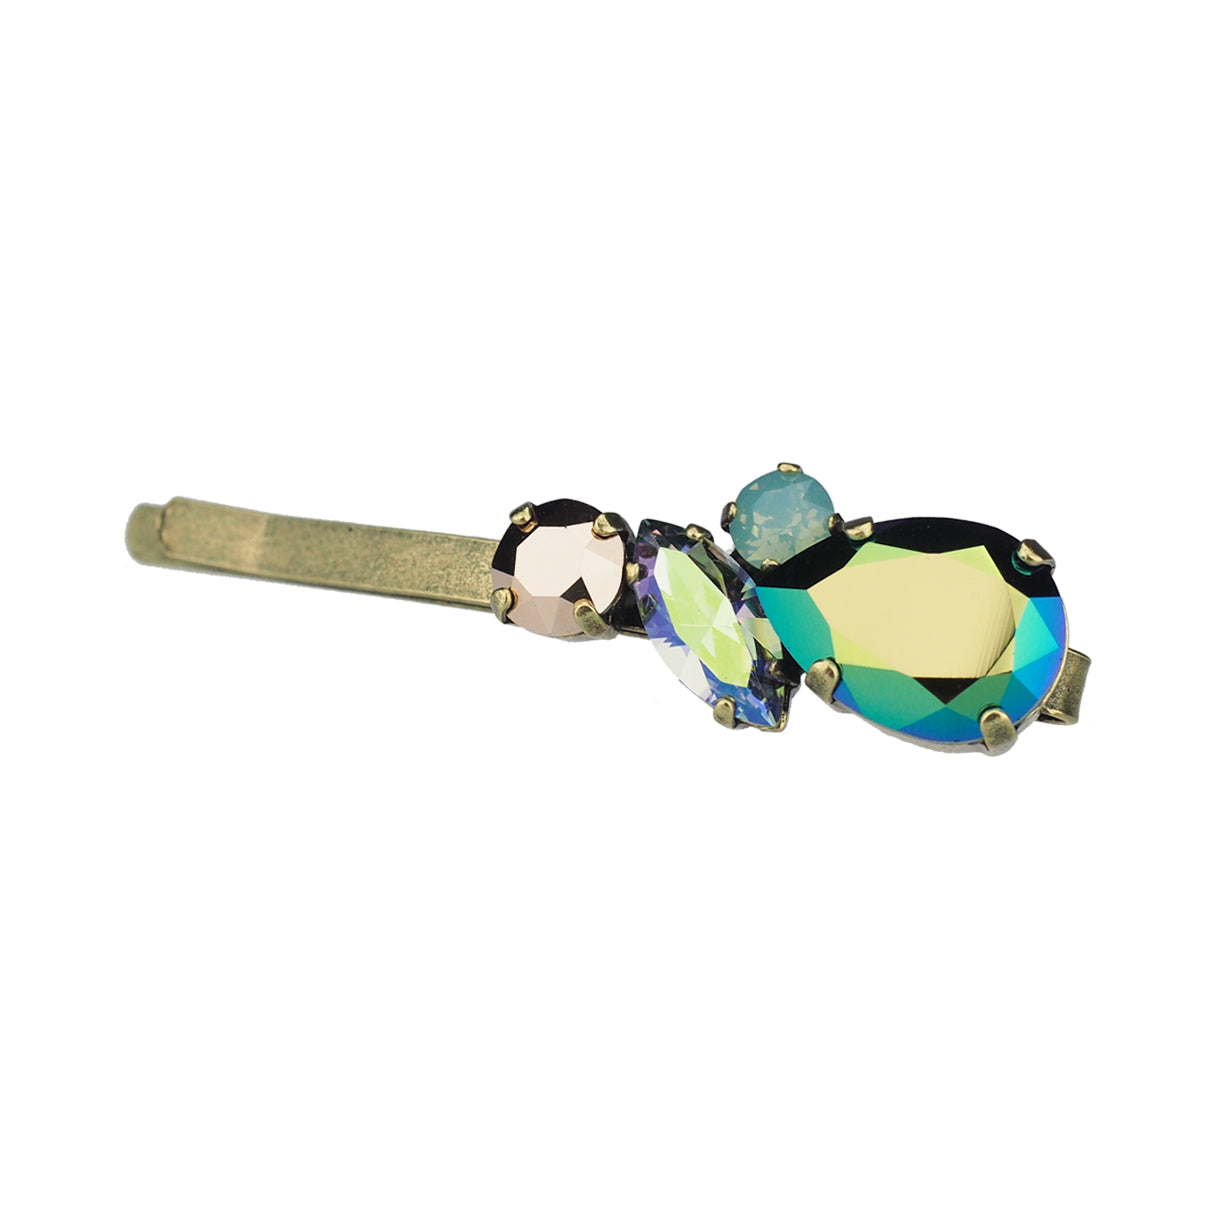 Justice Hair clip - Green